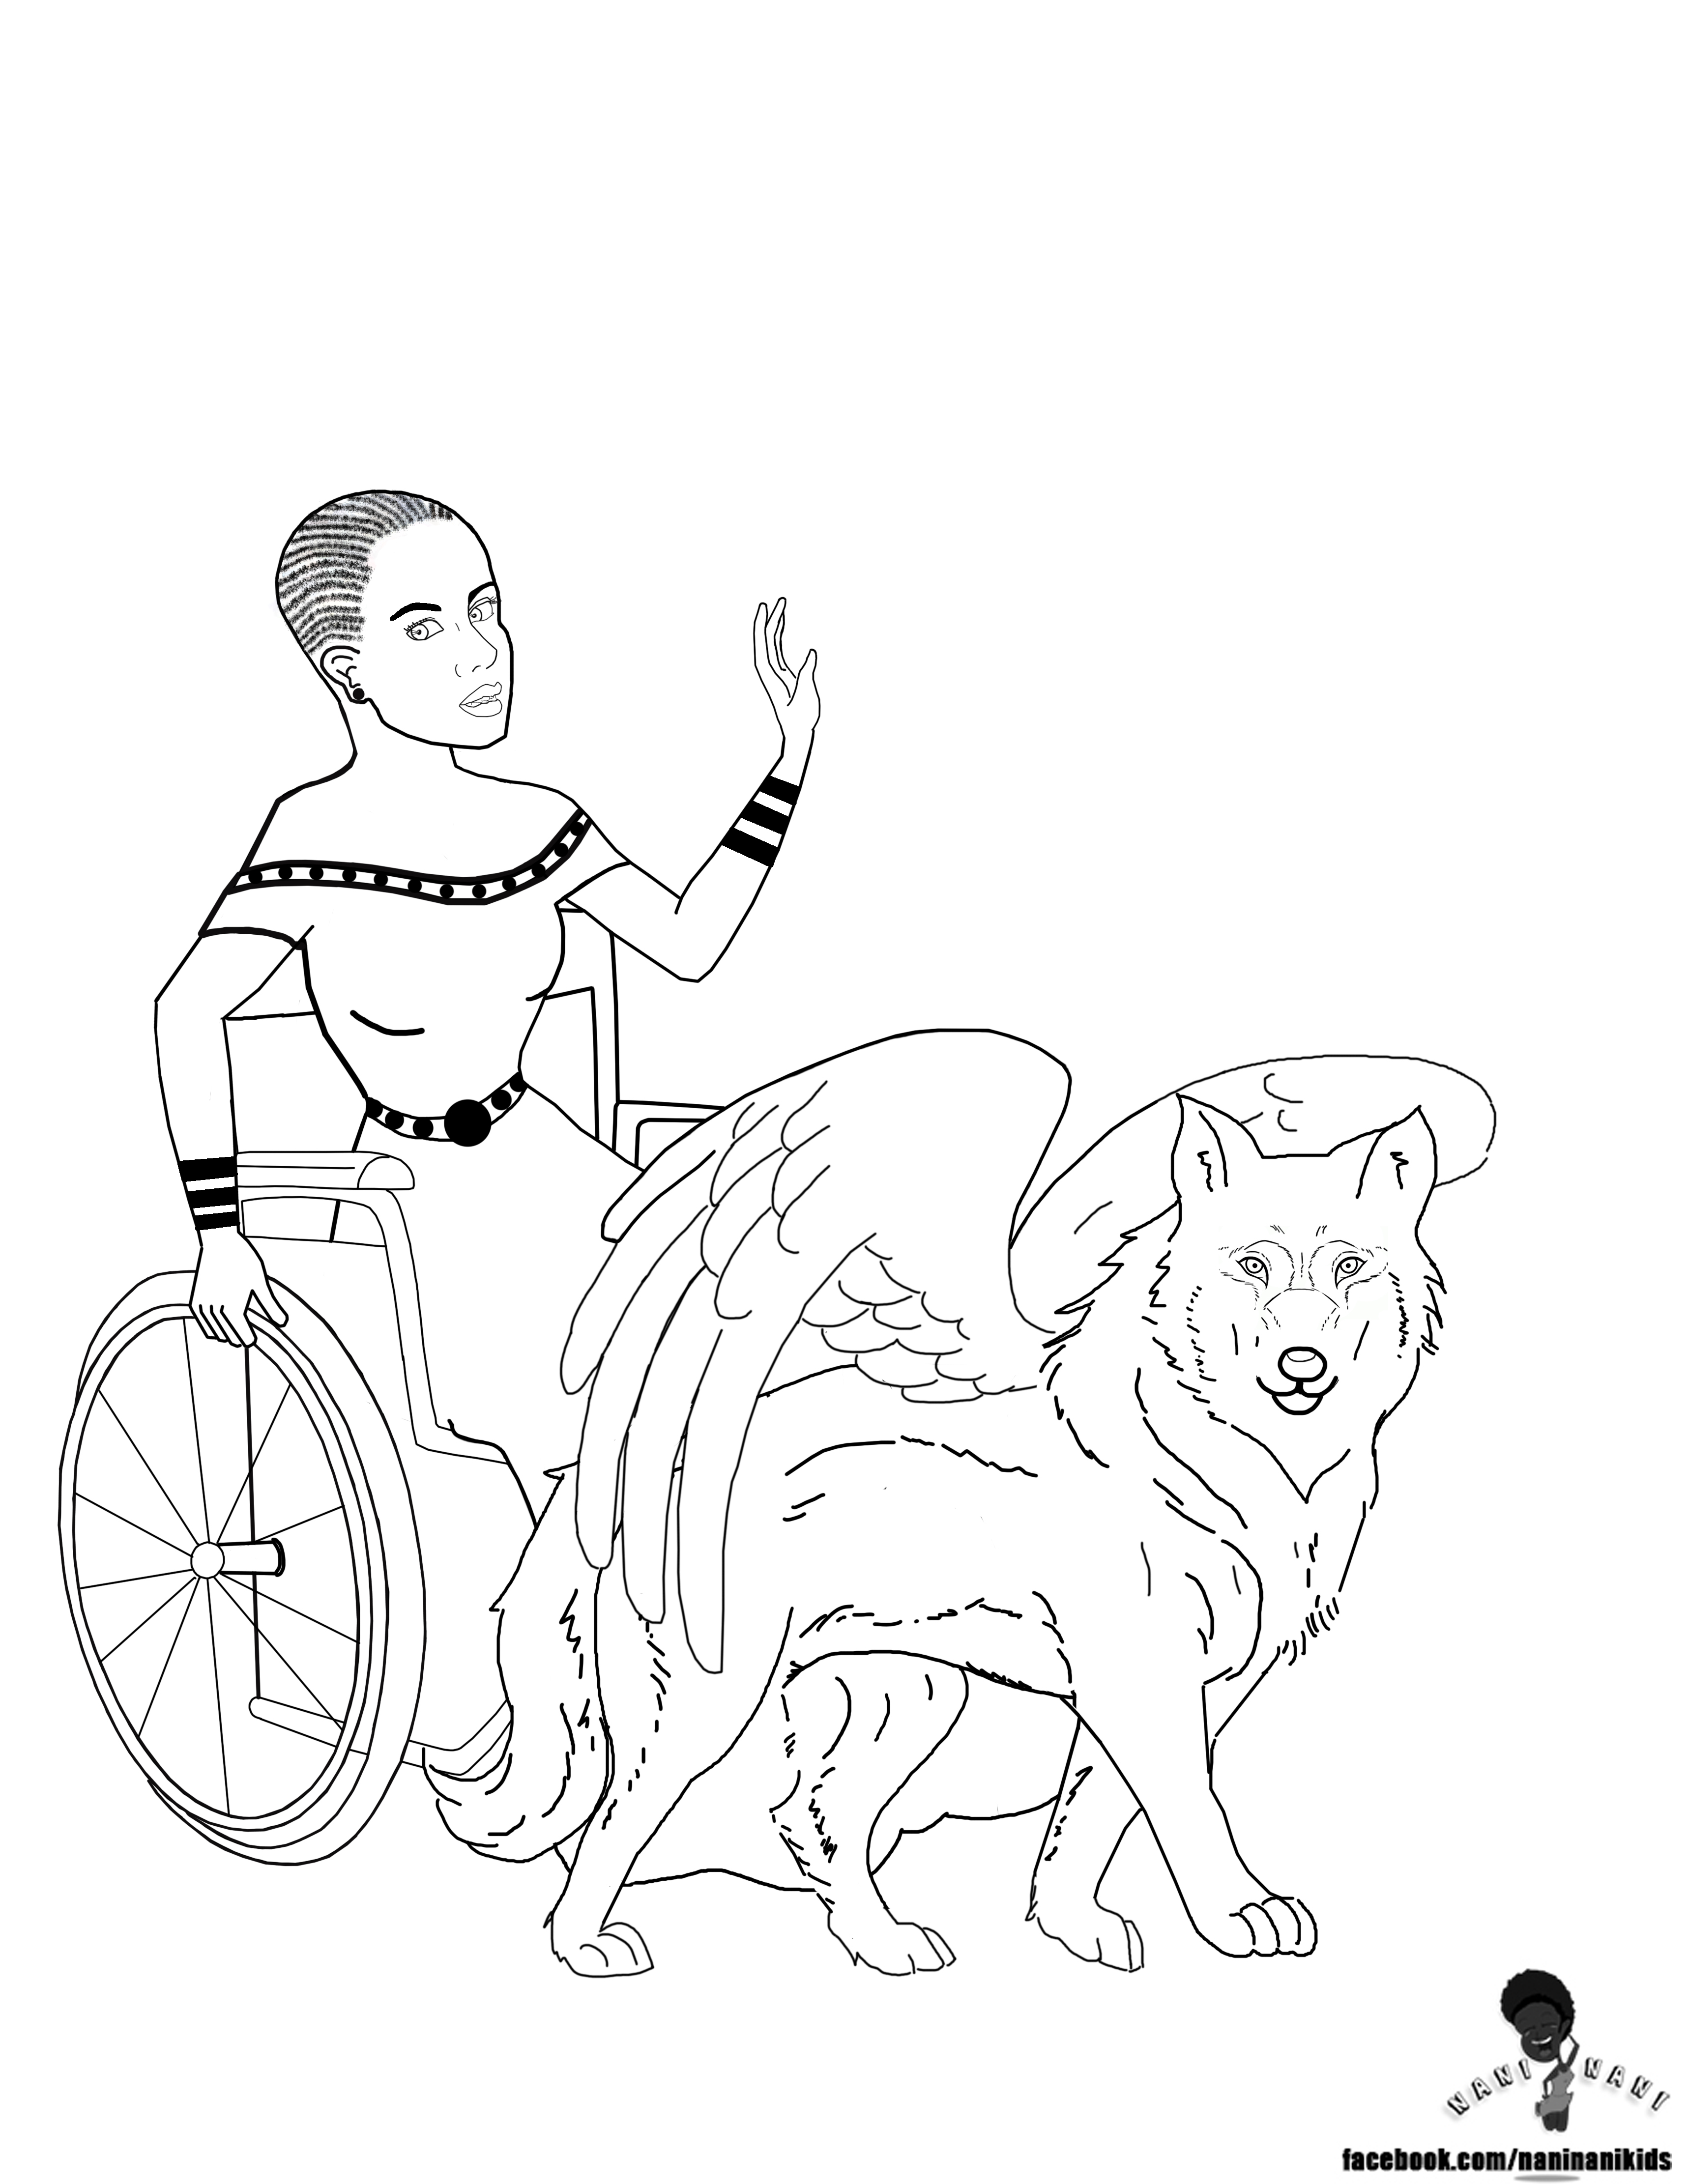 black american coloring pages - photo#36